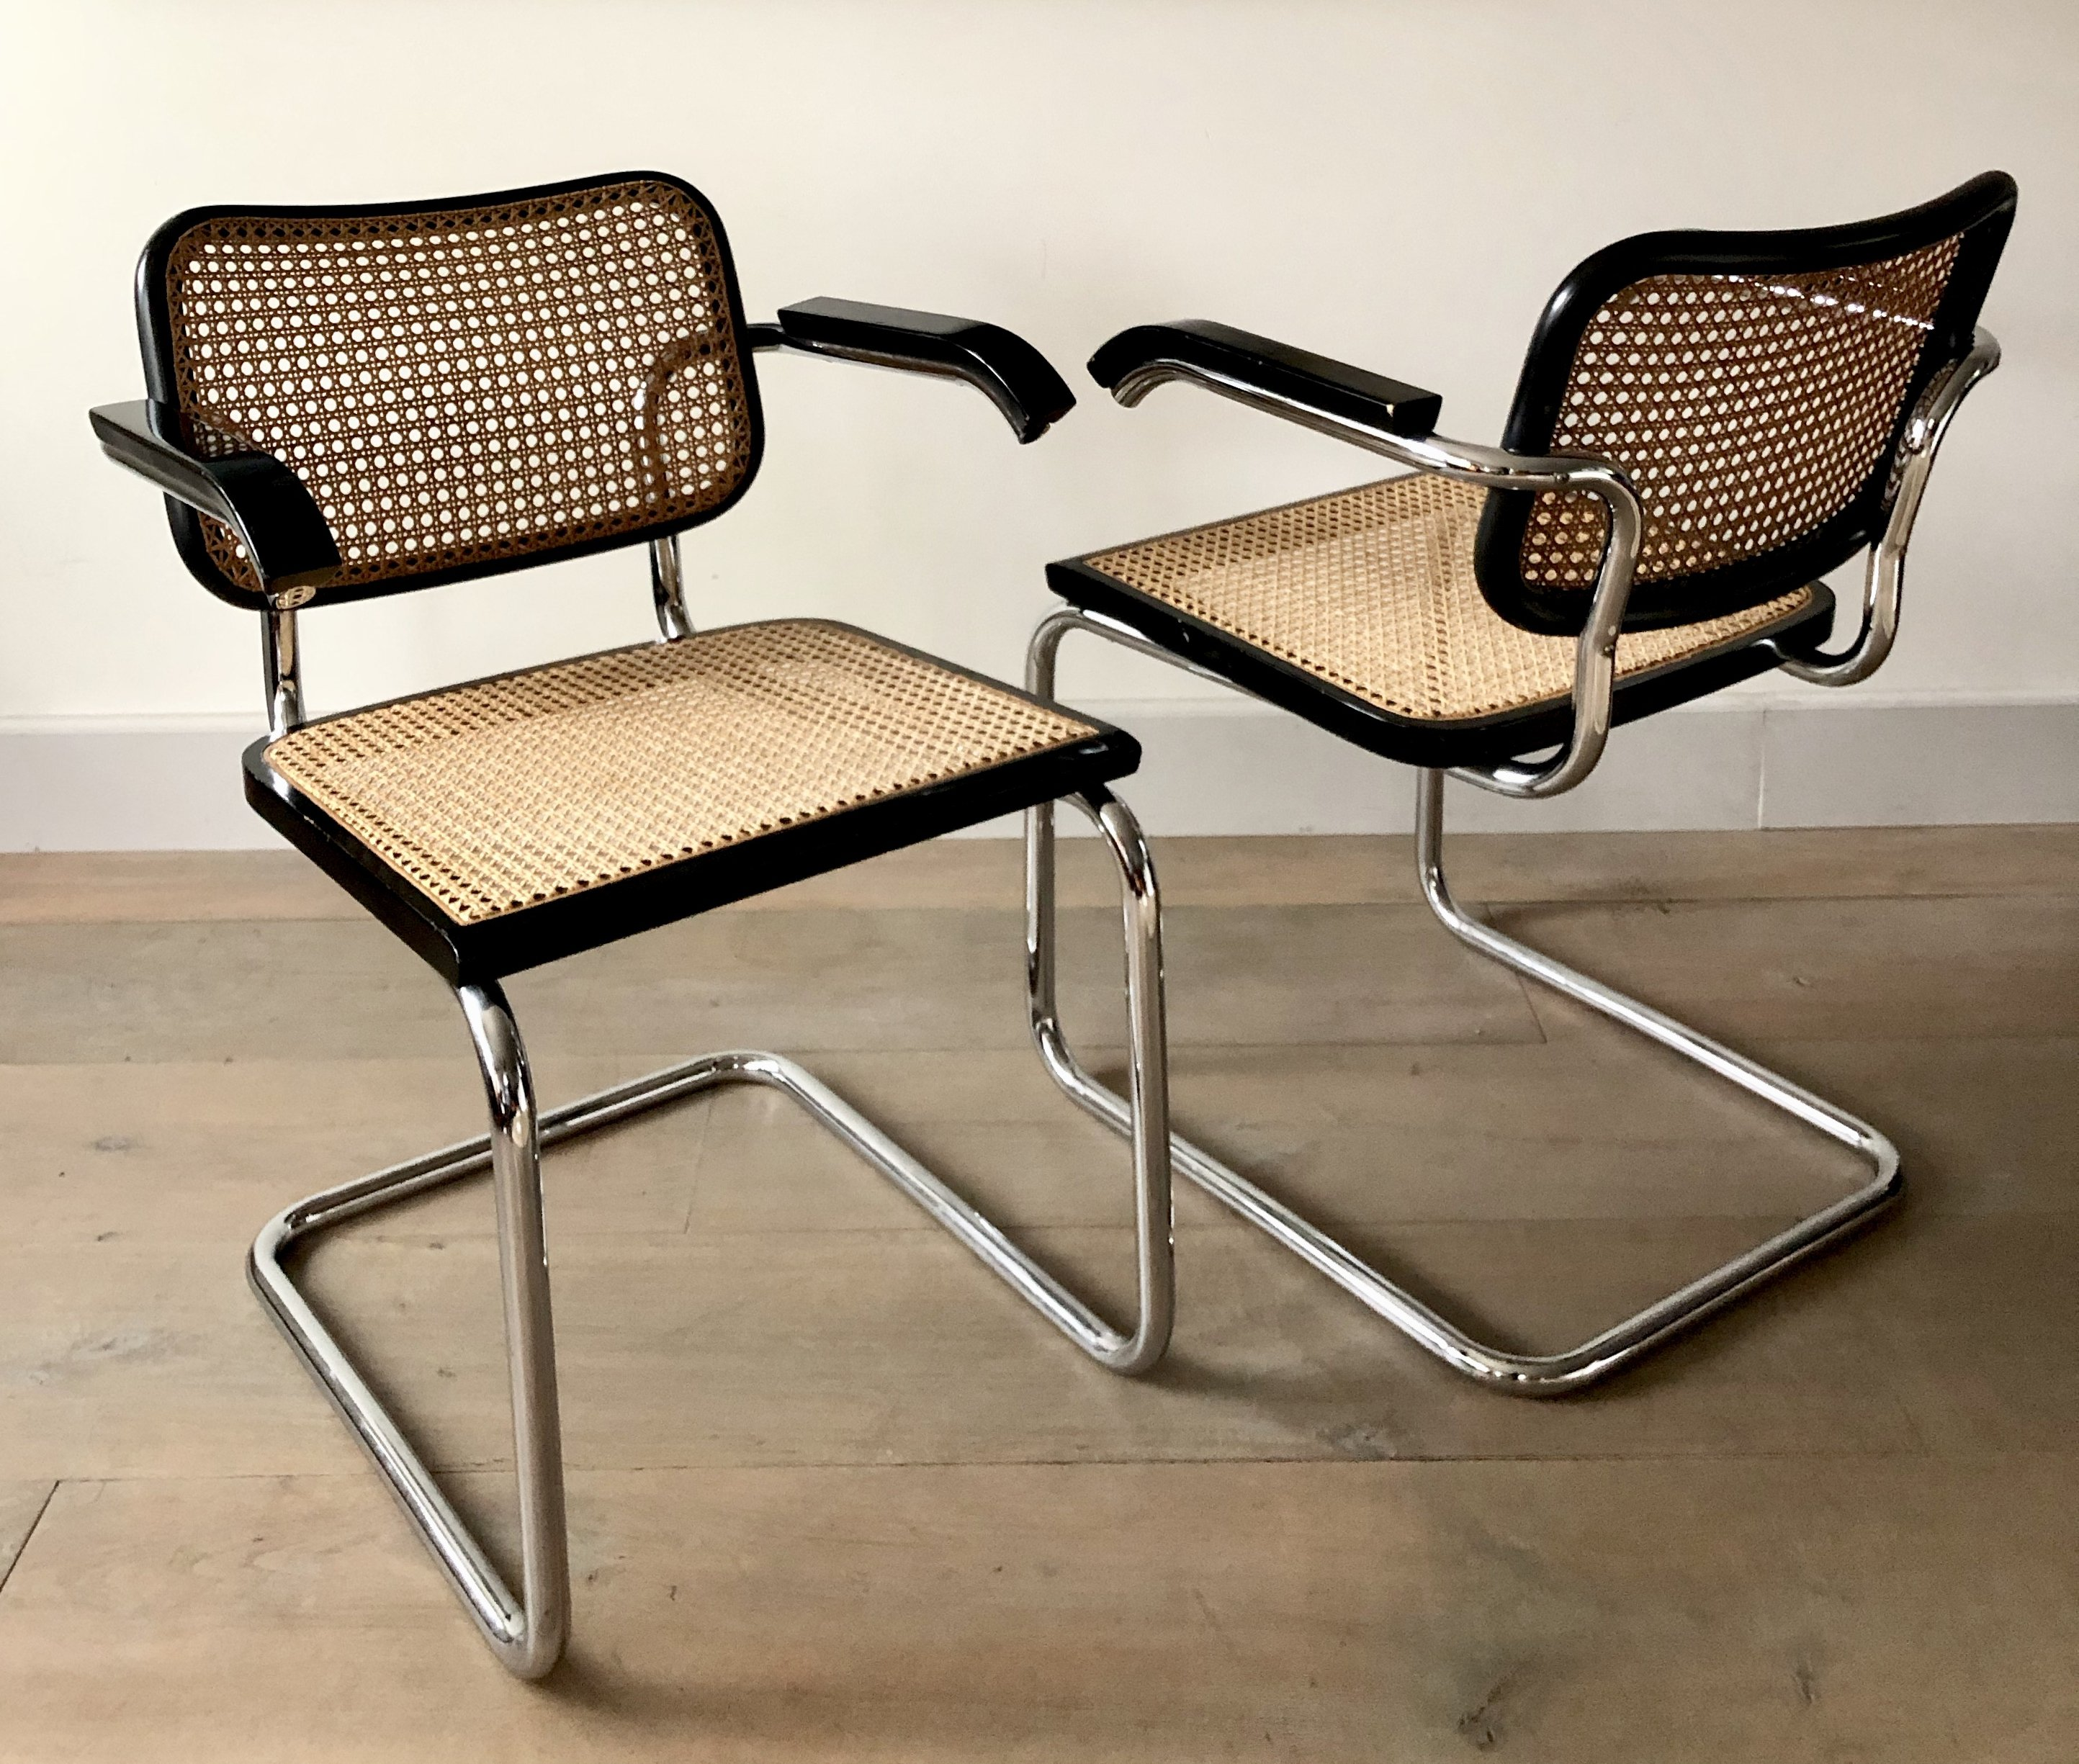 Marcel Breuer Rare Set Of 2 Marcel Breuer B64 Chairs By Gavina, Italy 1962 | #133717